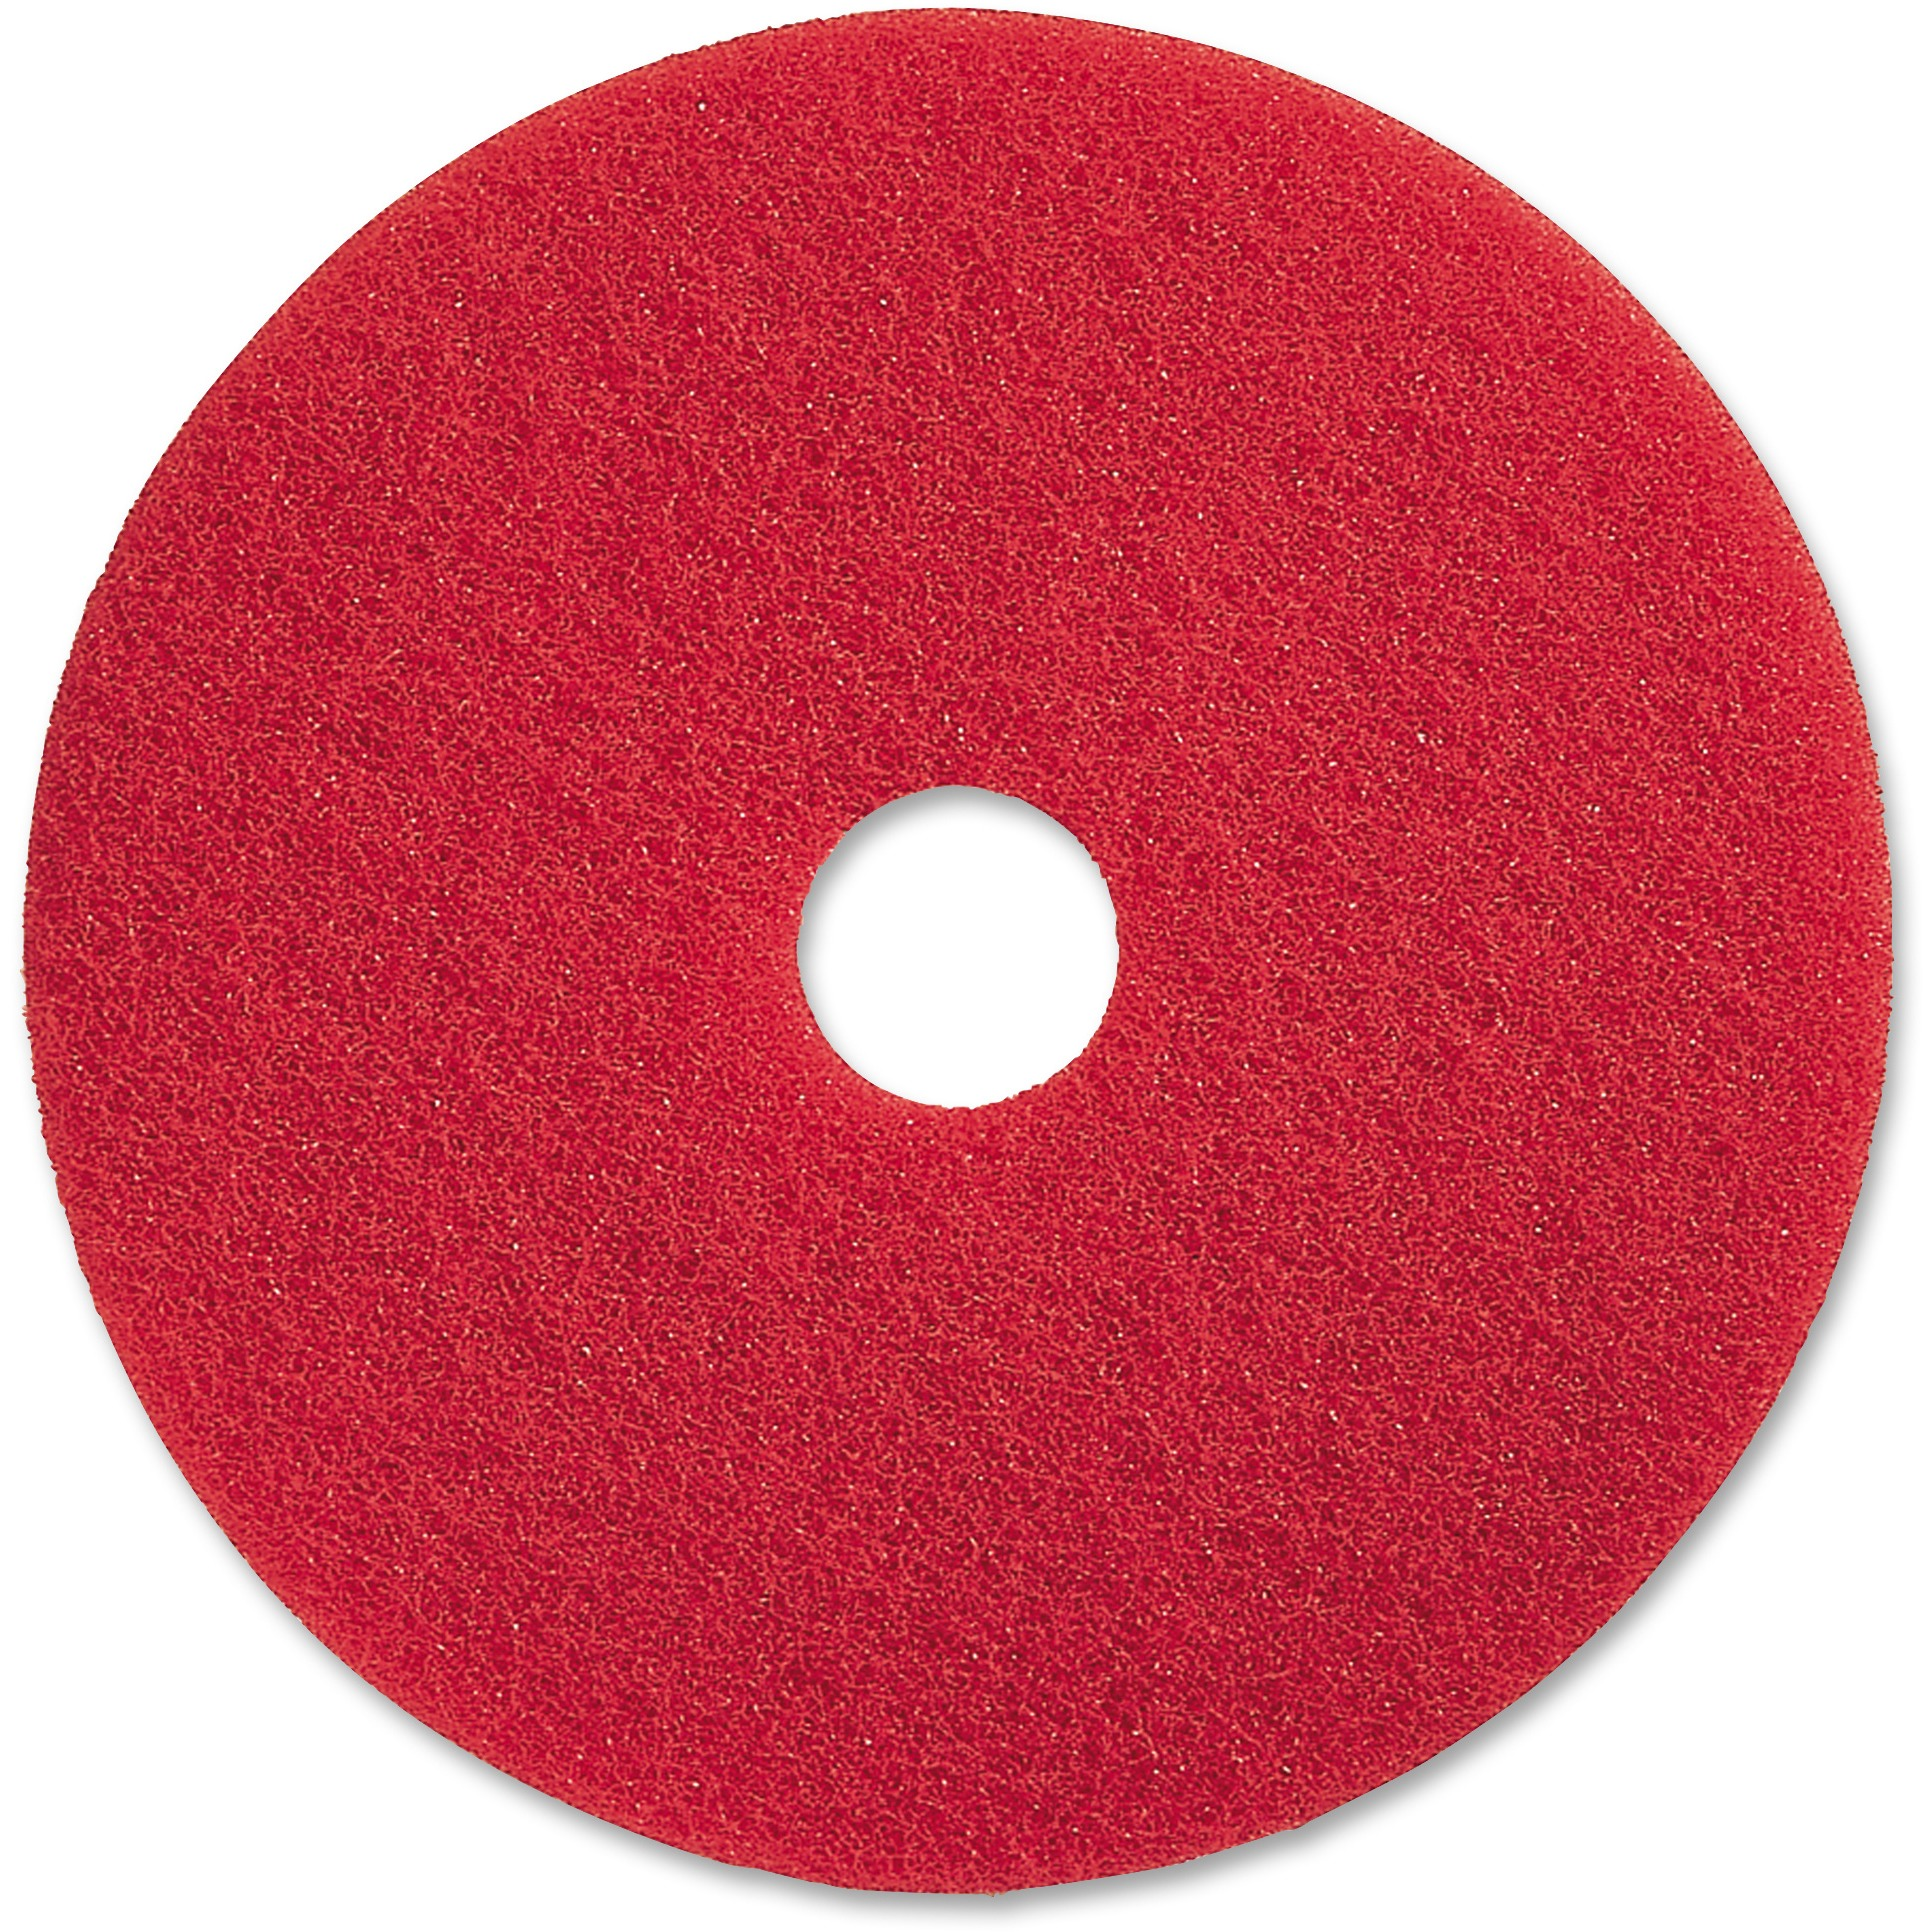 "Genuine Joe Red Buffing Floor Pad, 20"", 5 pack, GJO90420"